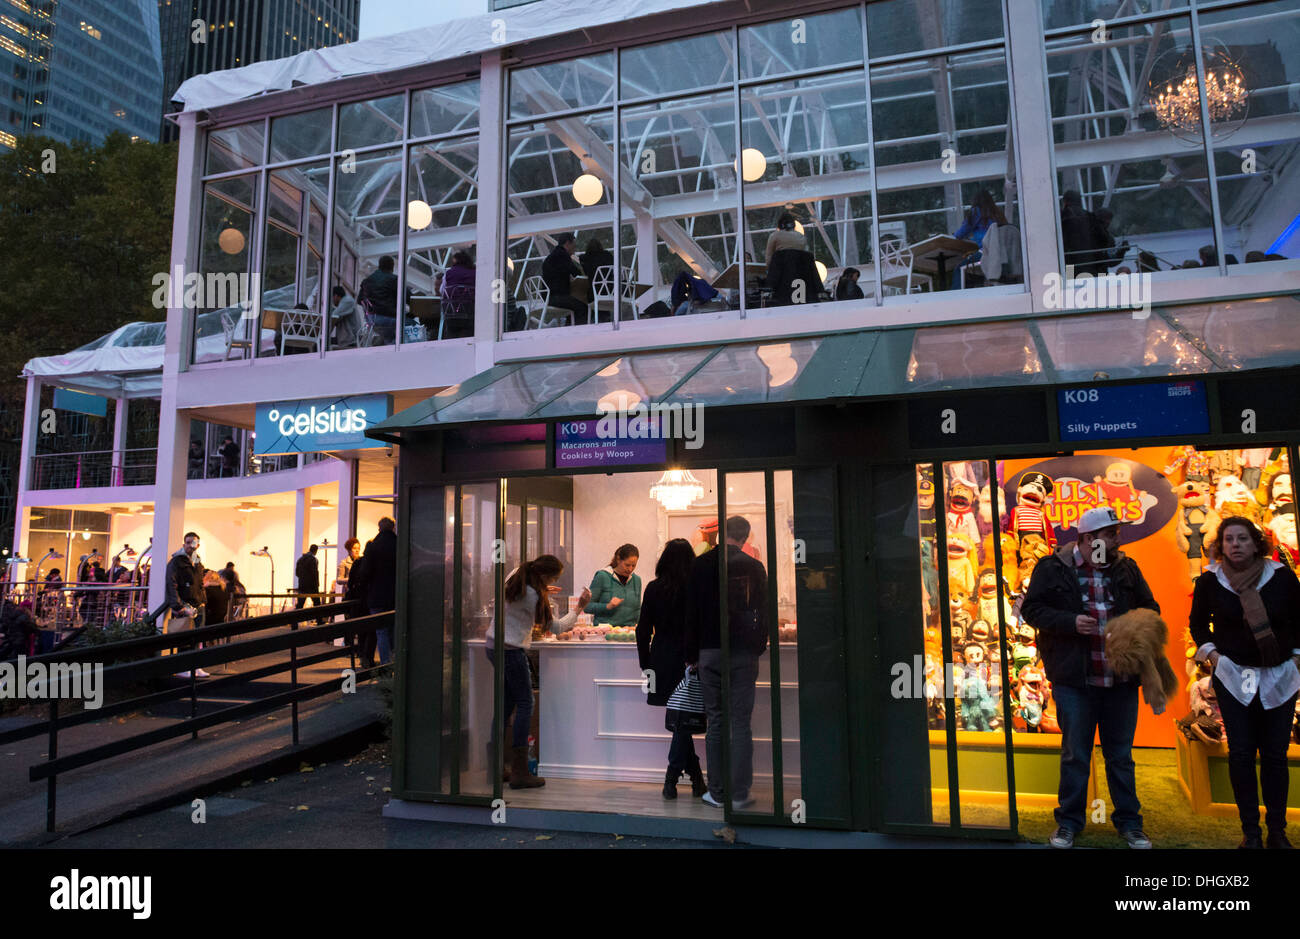 Celsius Restaurant In Bank Of America Winter Village At Bryant Park Stock Photo Royalty Free